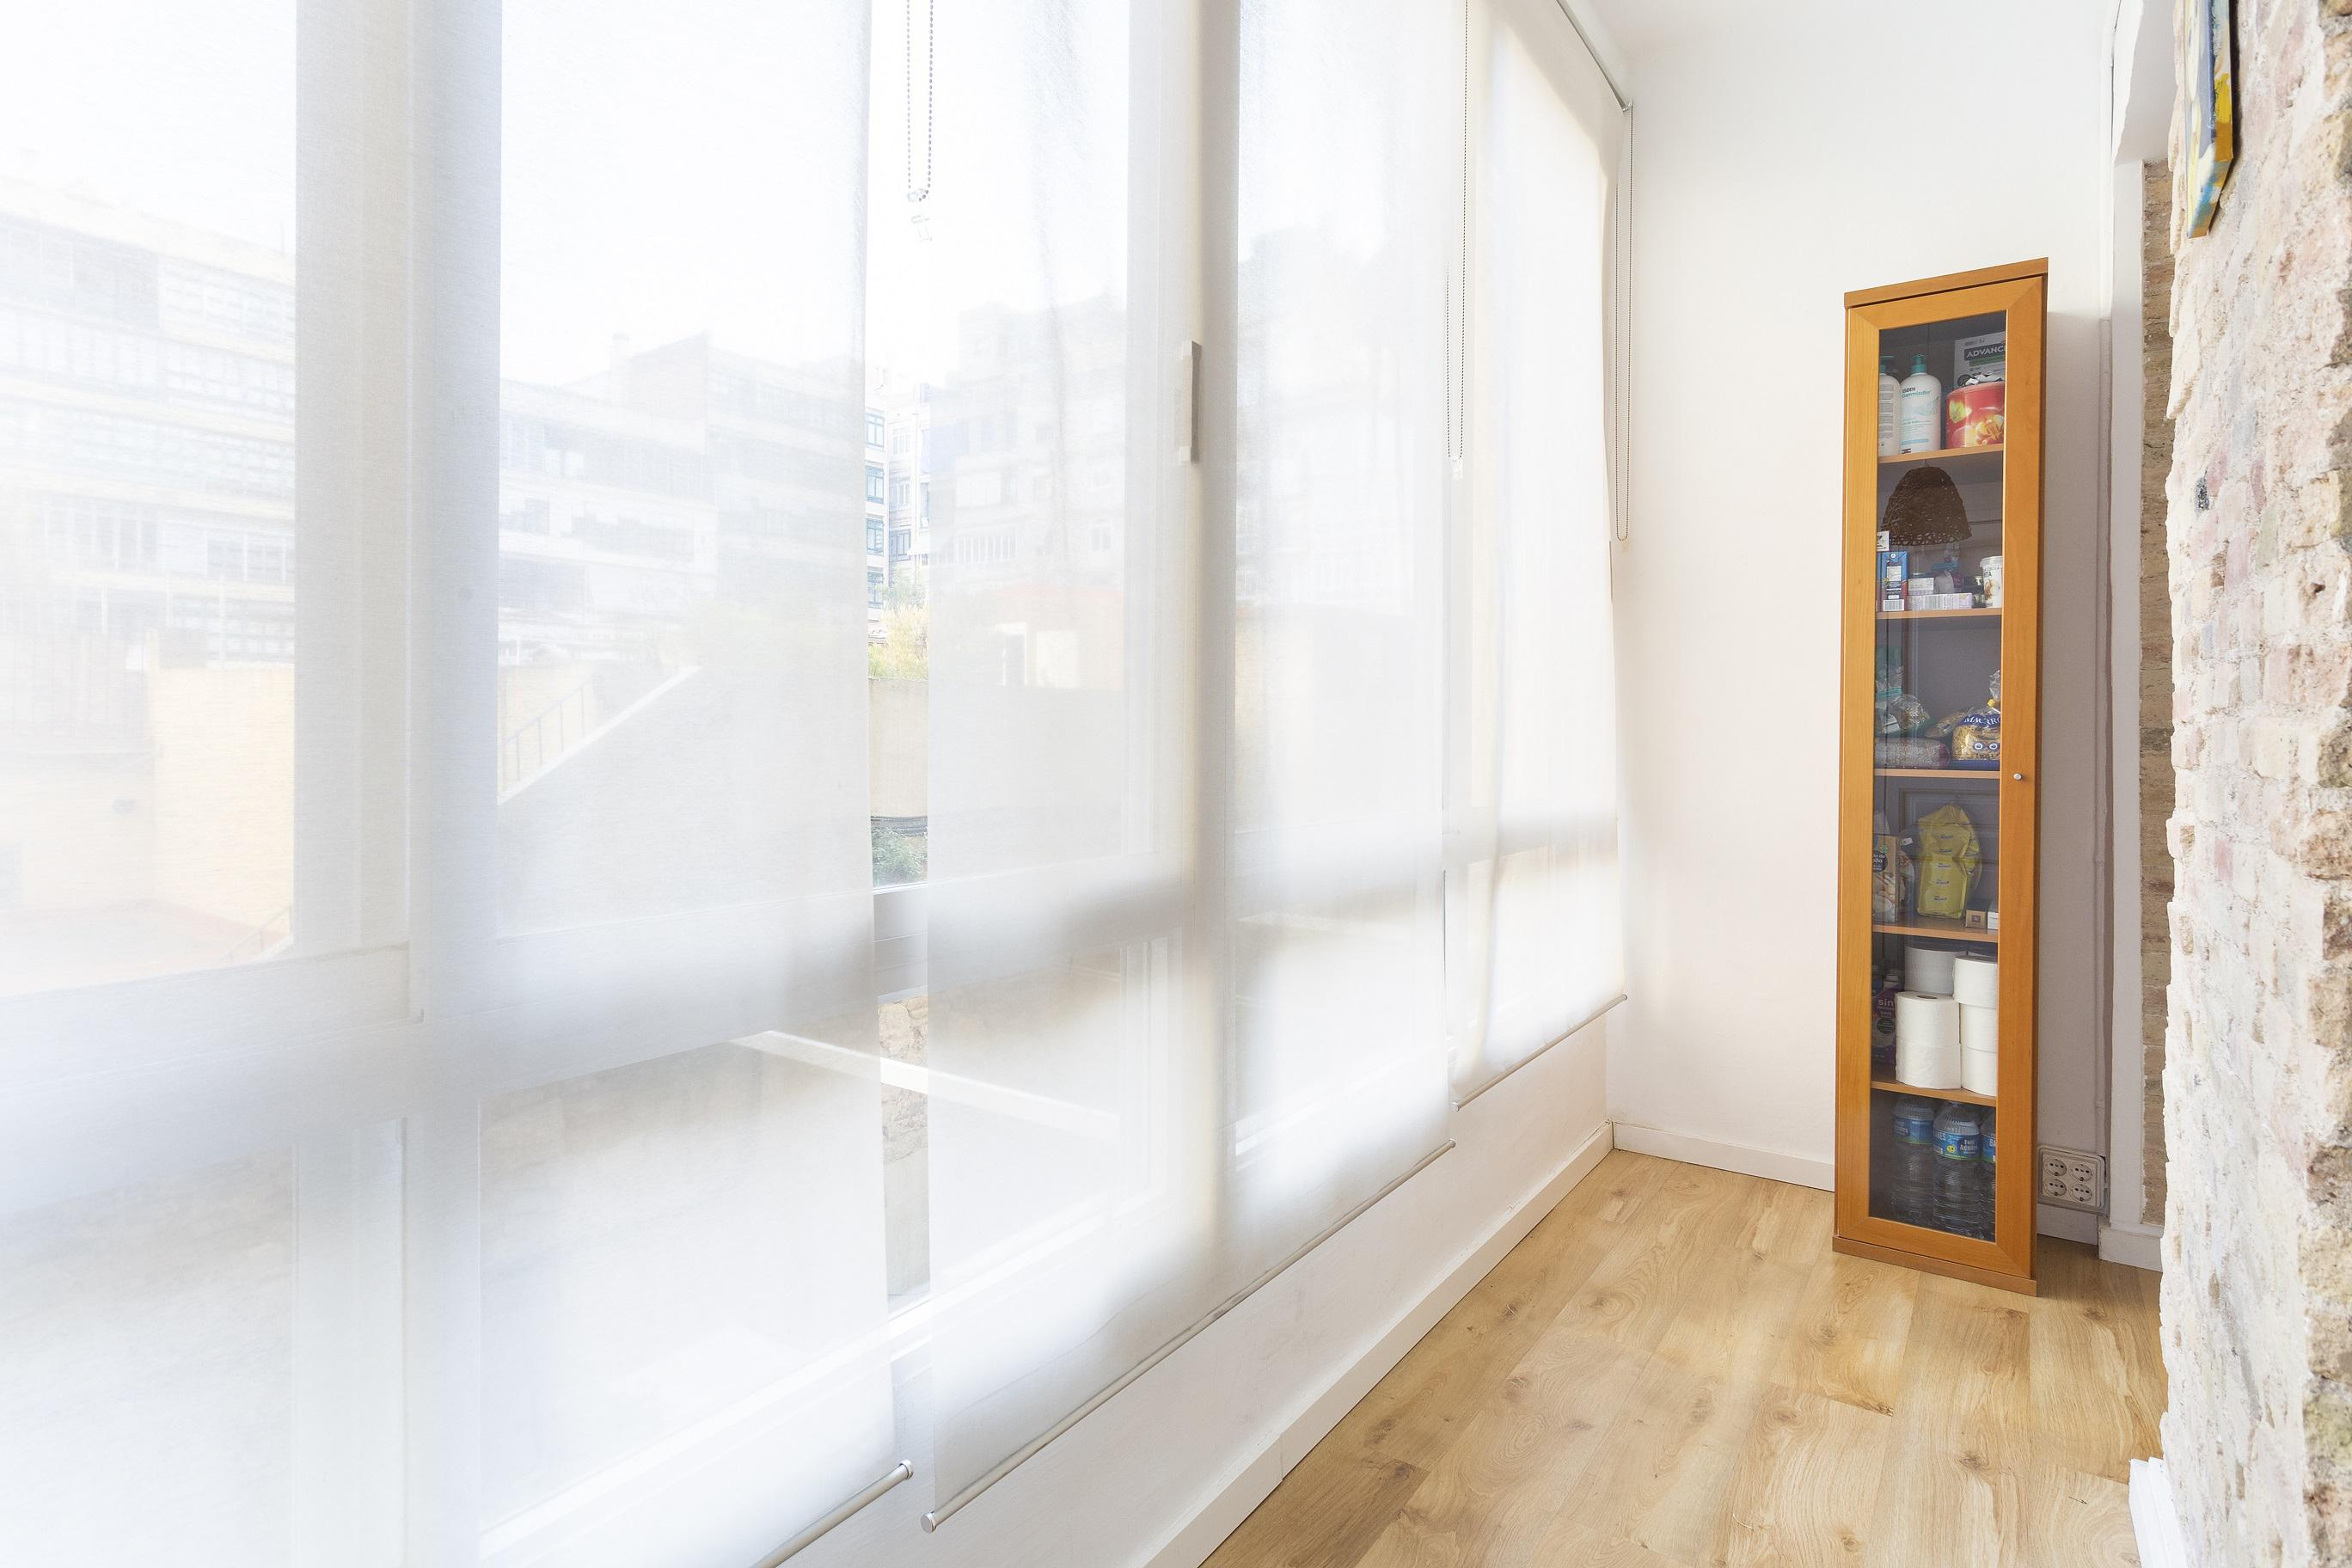 236190 Apartment for sale in Eixample, Old Left Eixample 11